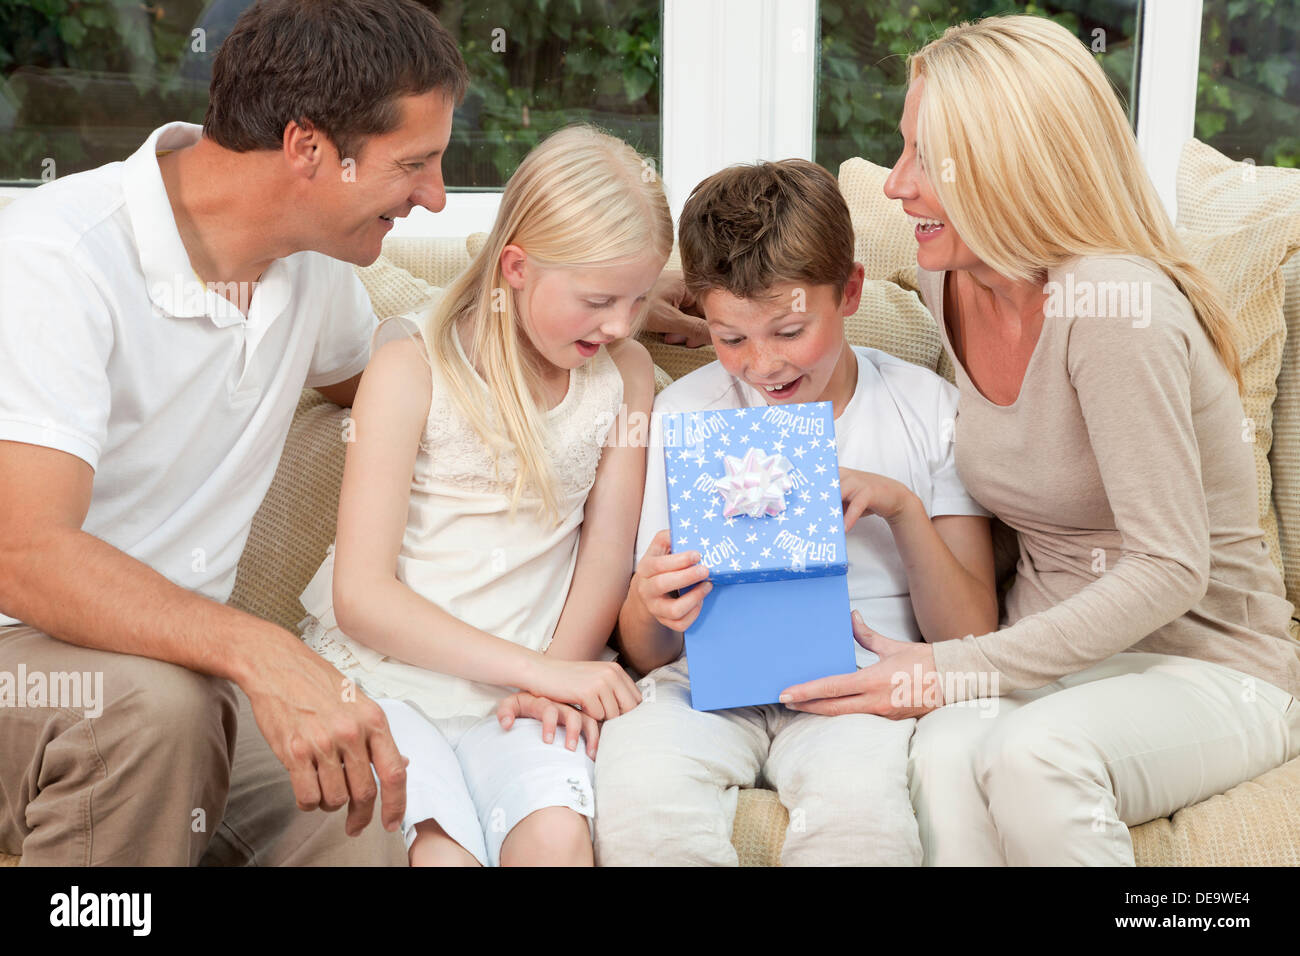 happy family mother father son and daughter sitting on a sofa at home the boy child is opening a birthday present in a blue box - Stock Image